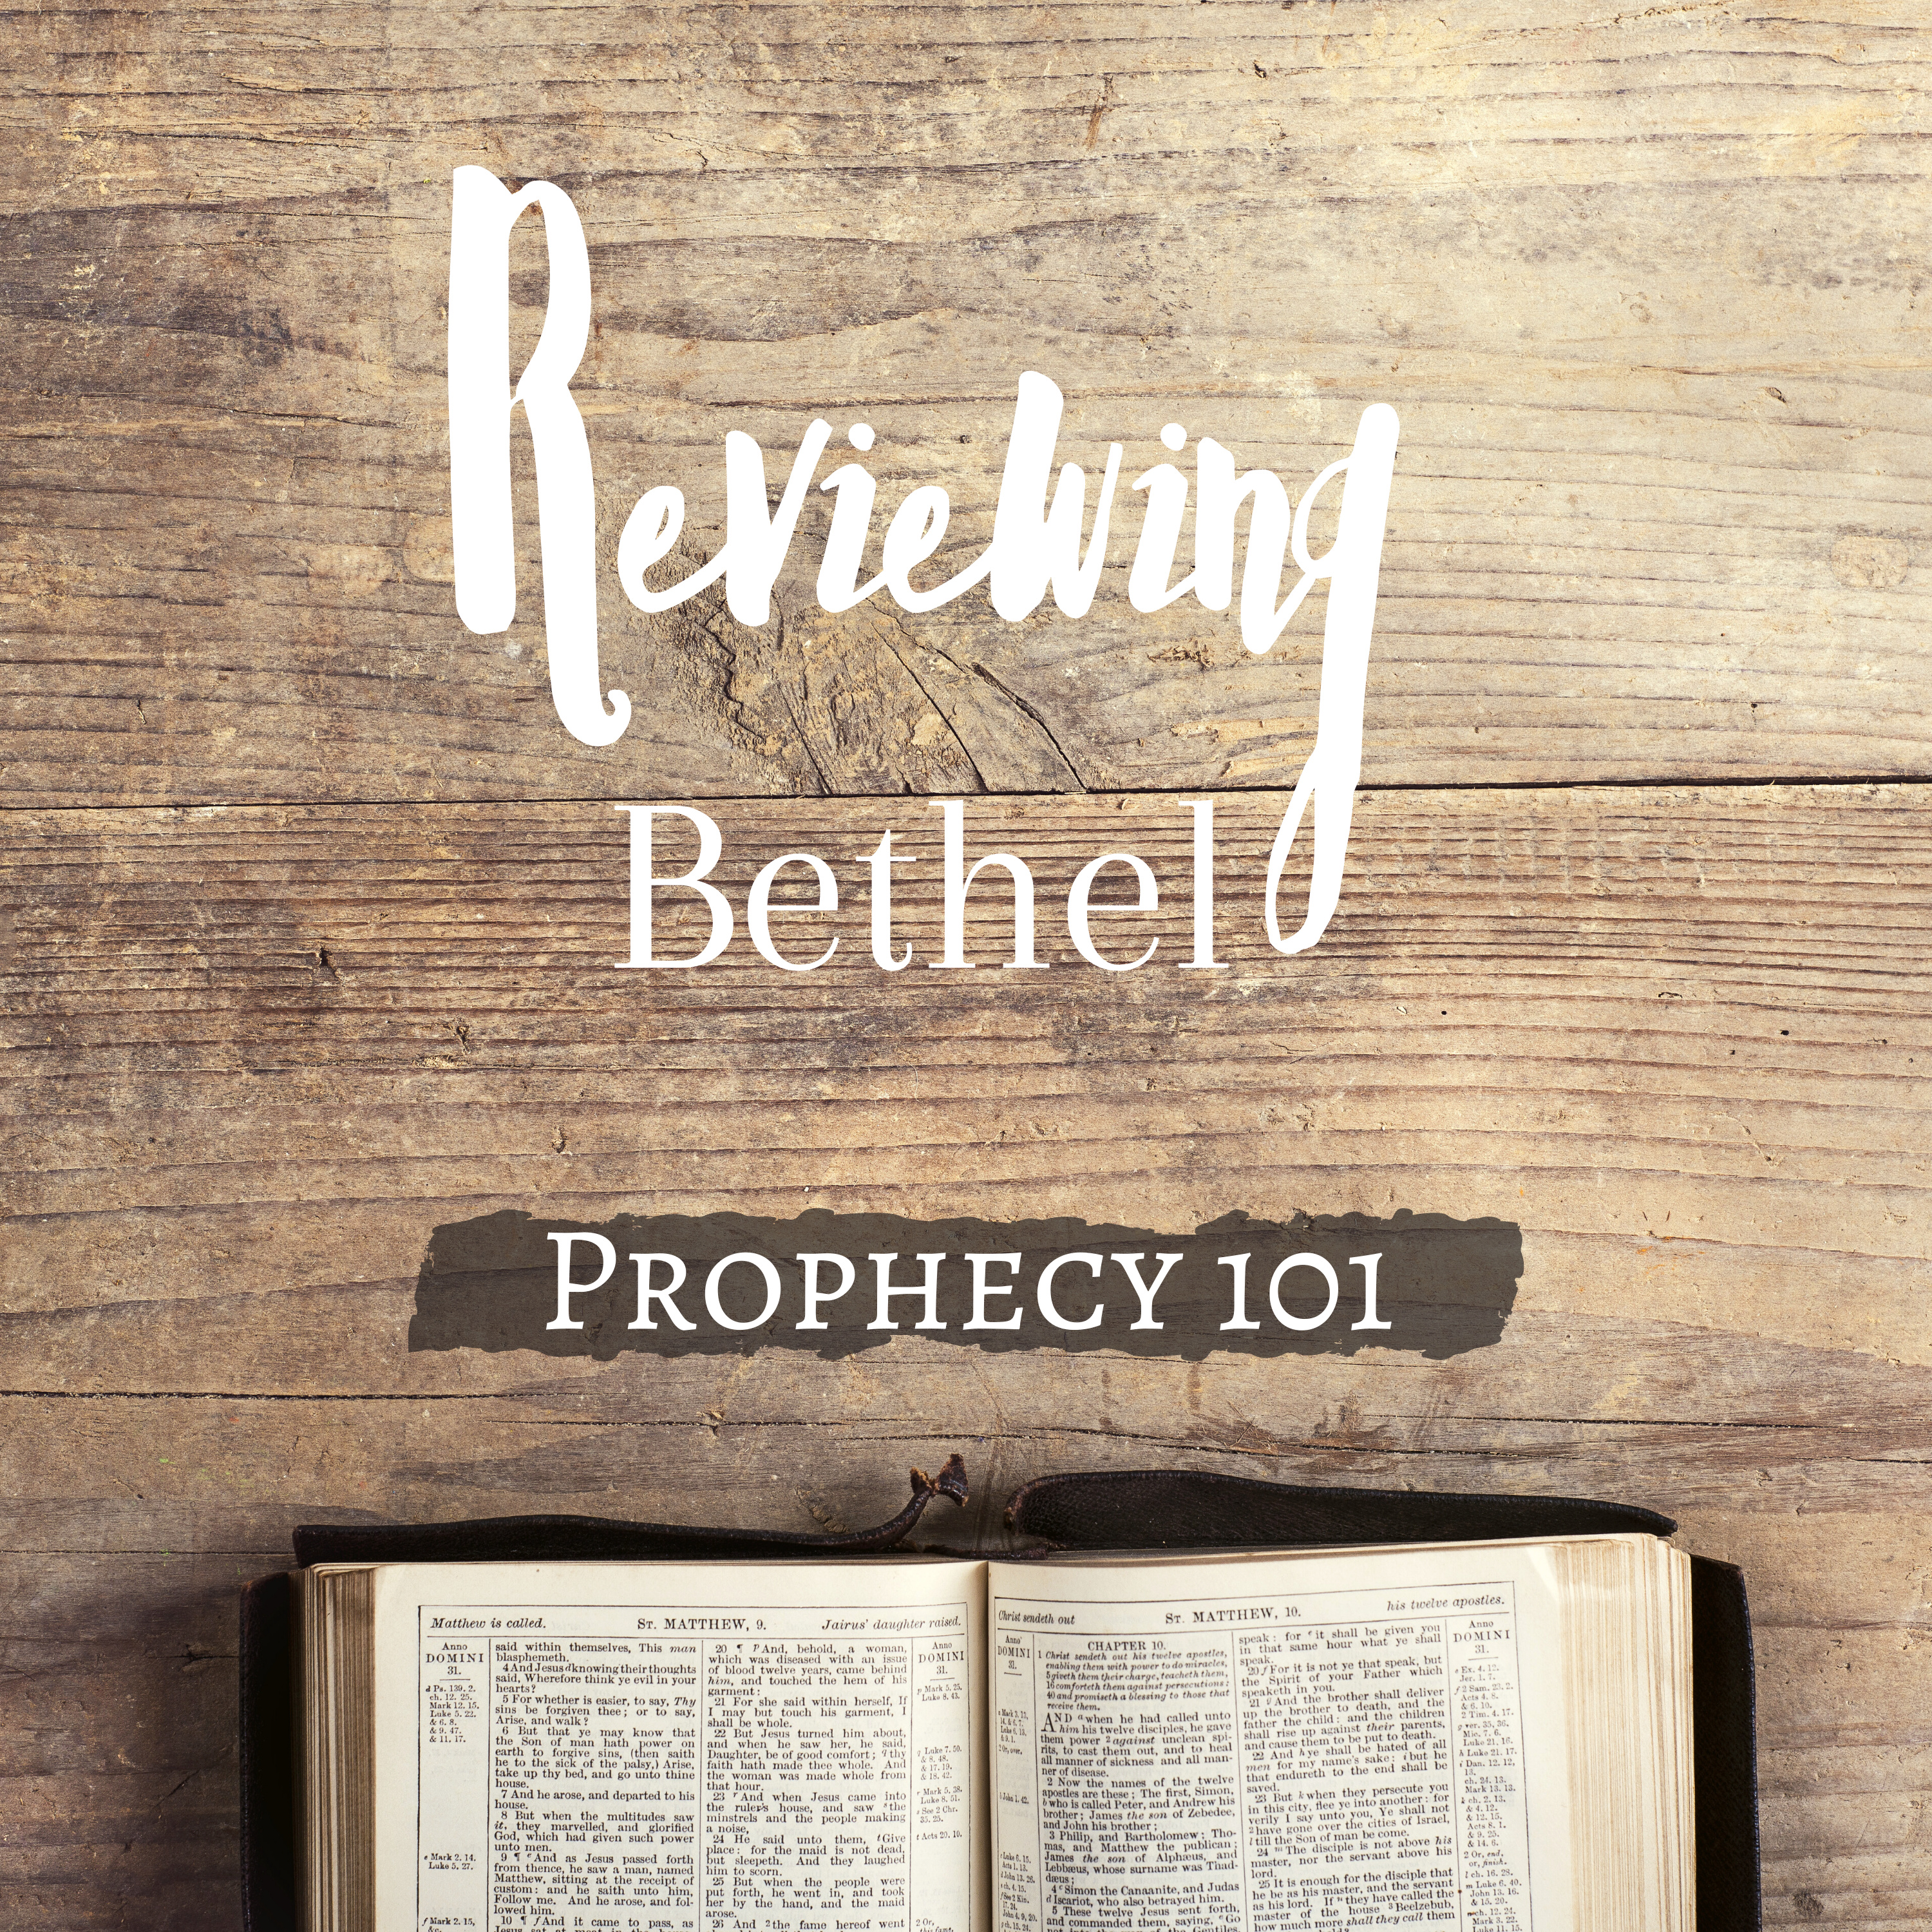 Reviewing Bethel Part 1: Prophecy 101